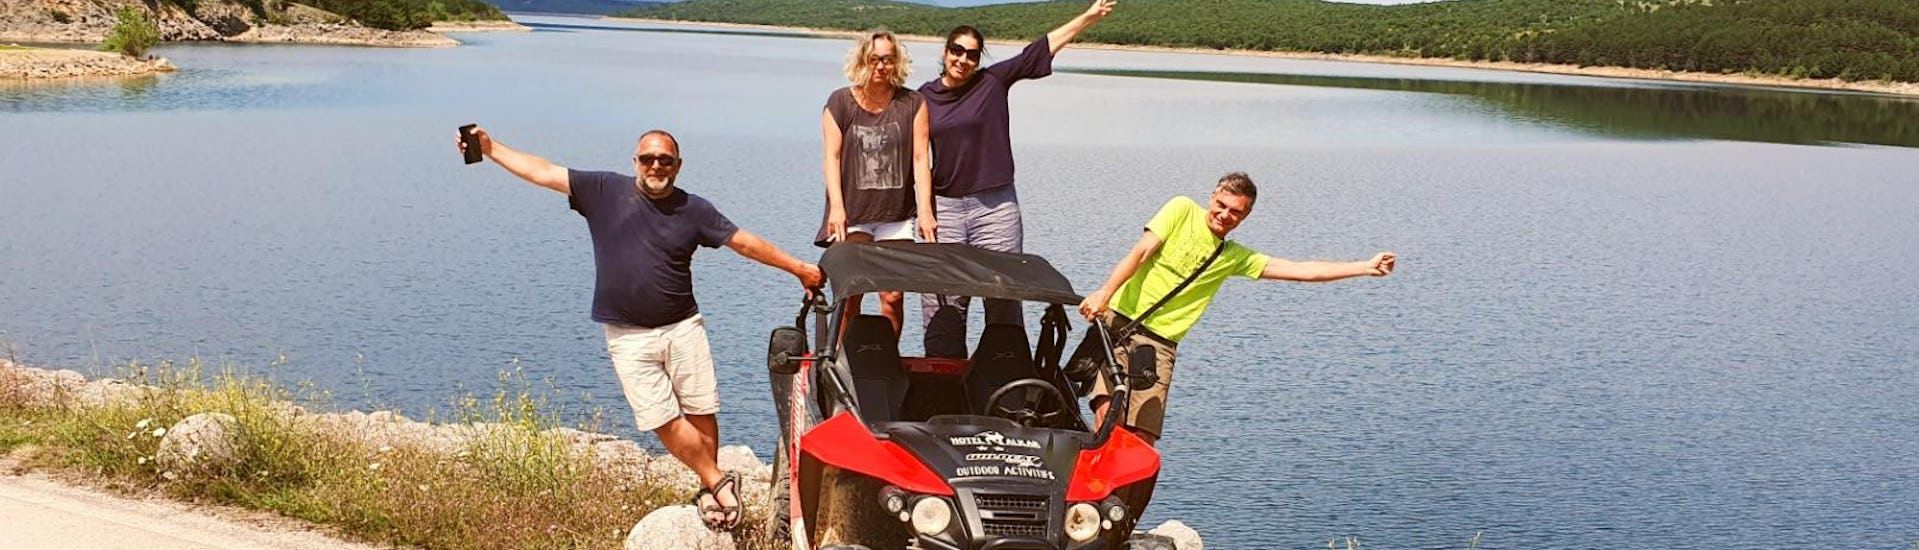 Happy participants of the Fun Buggy Tour from Sinj are posing for a photo taken by a local guide from Hotel Alkar.